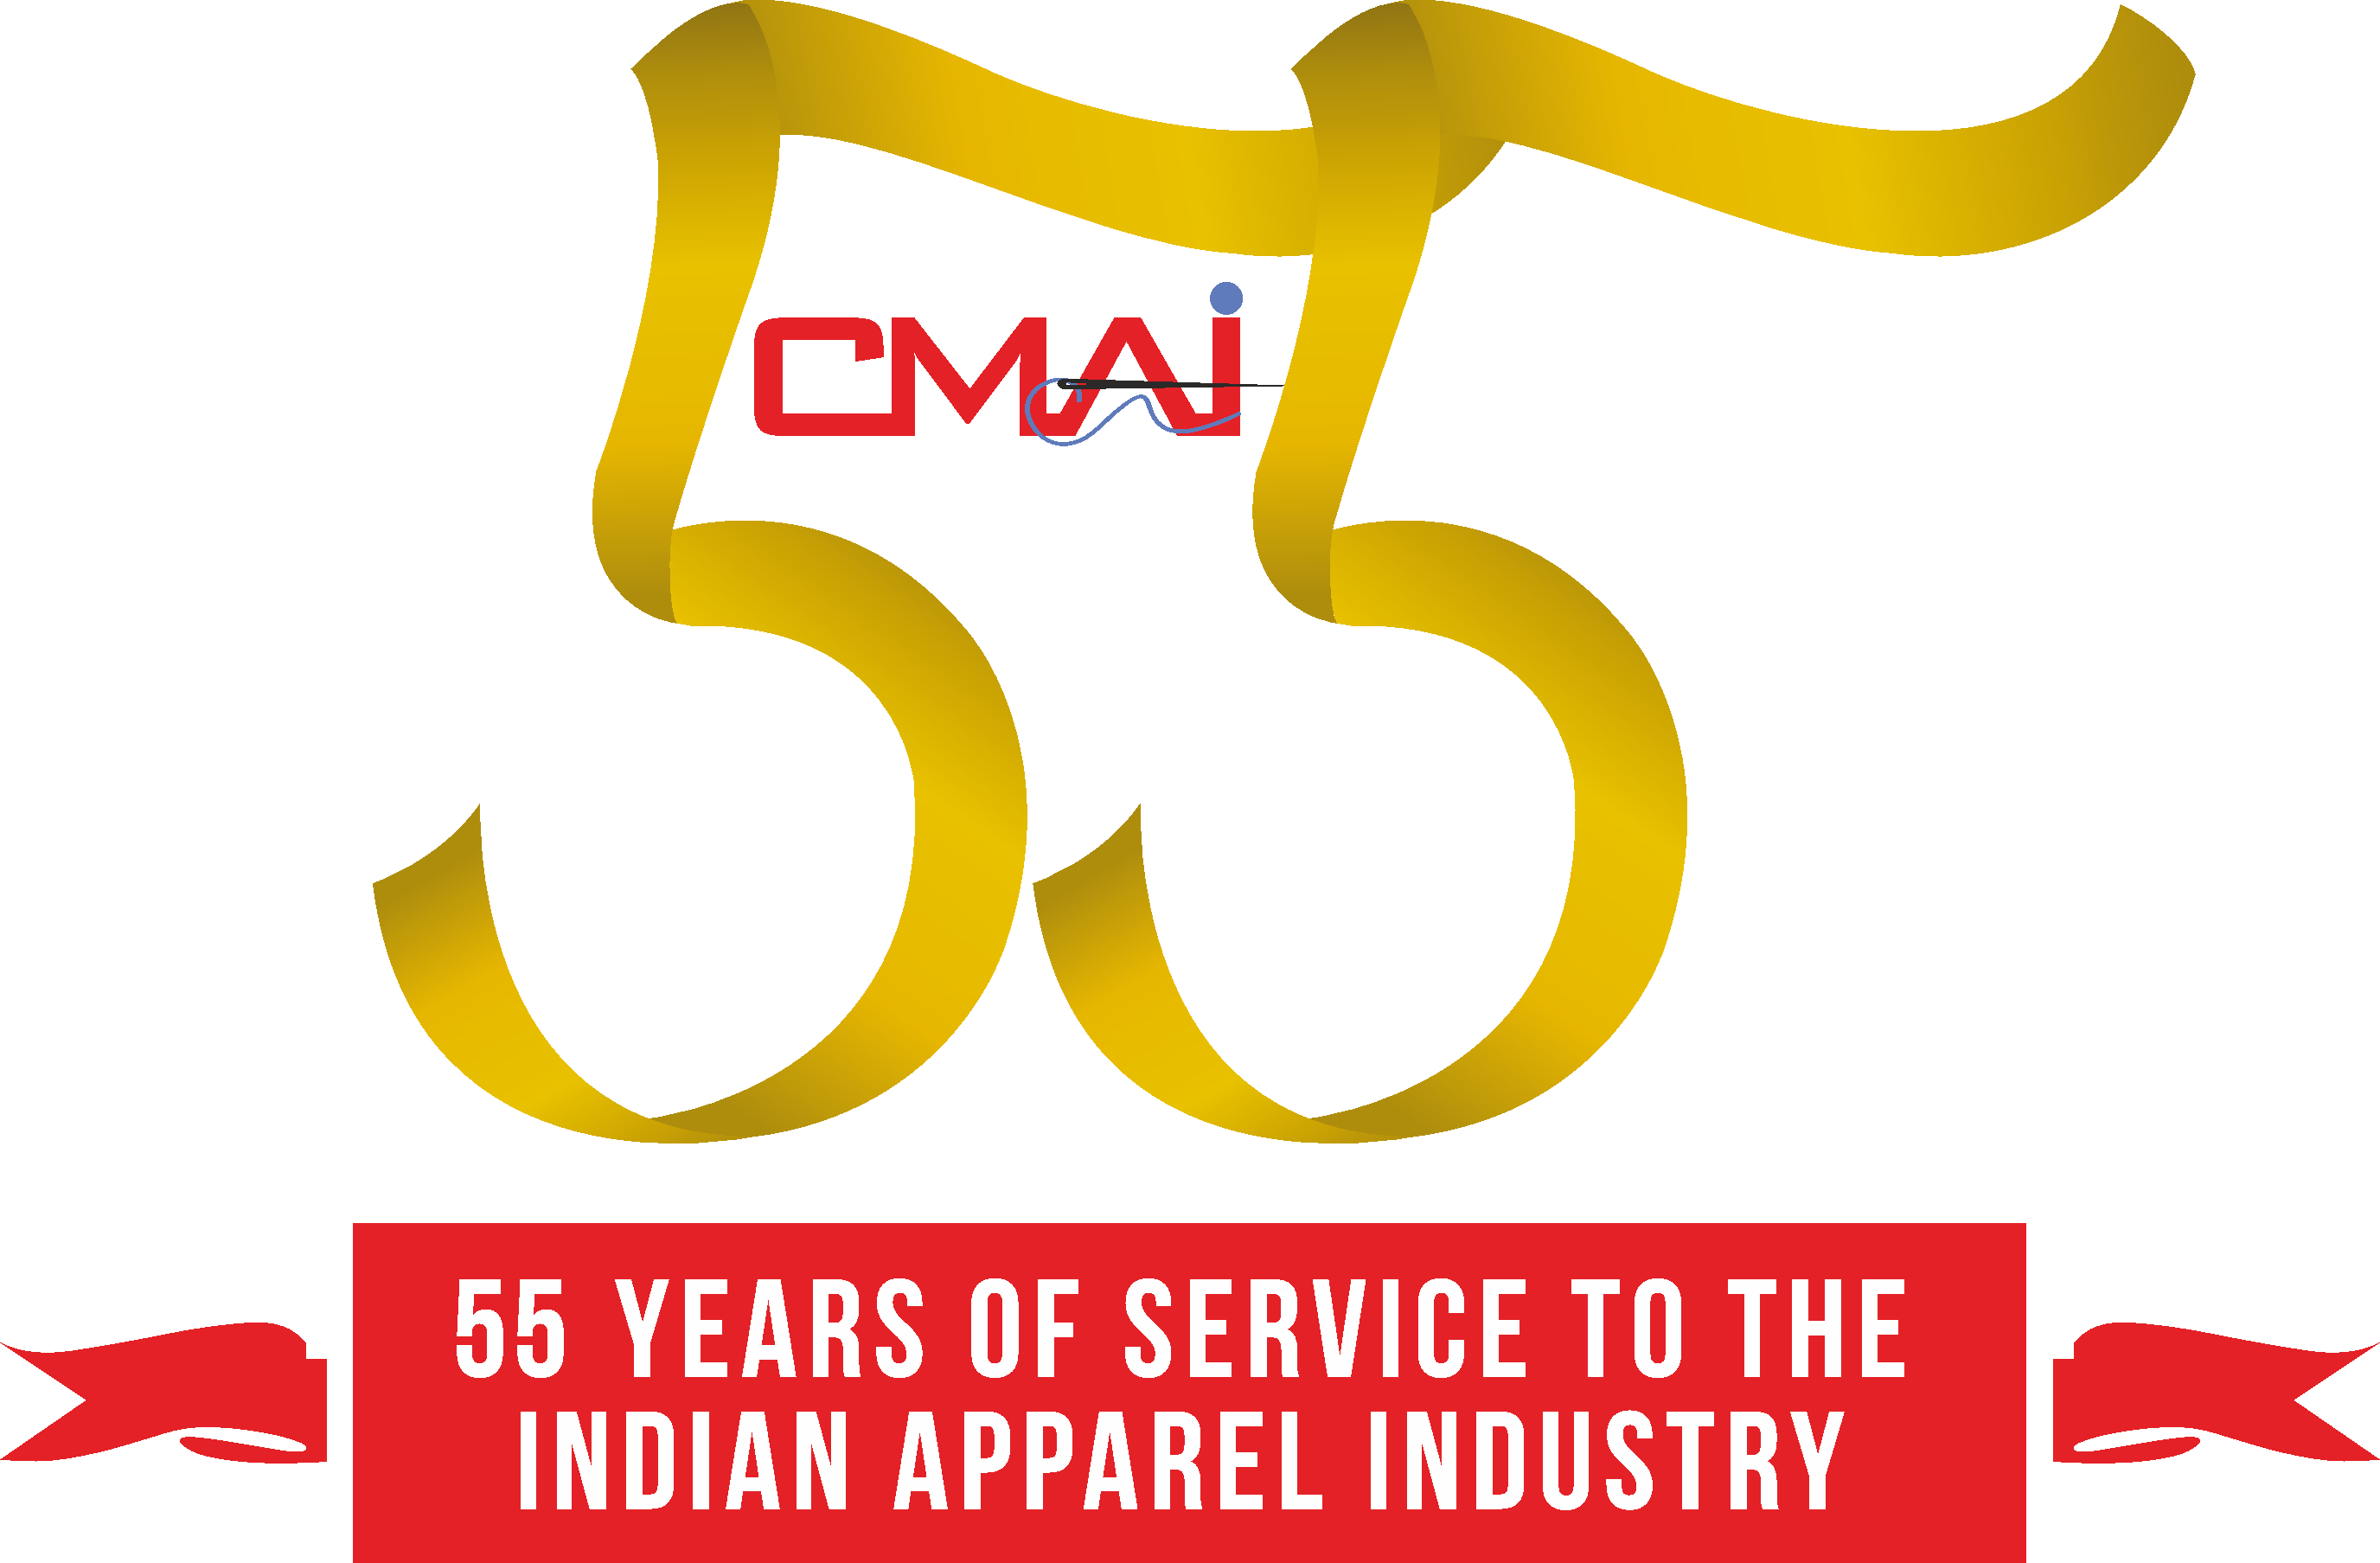 70575f063967 Welcome to CMAI - The Clothing Manufacturers Association of India